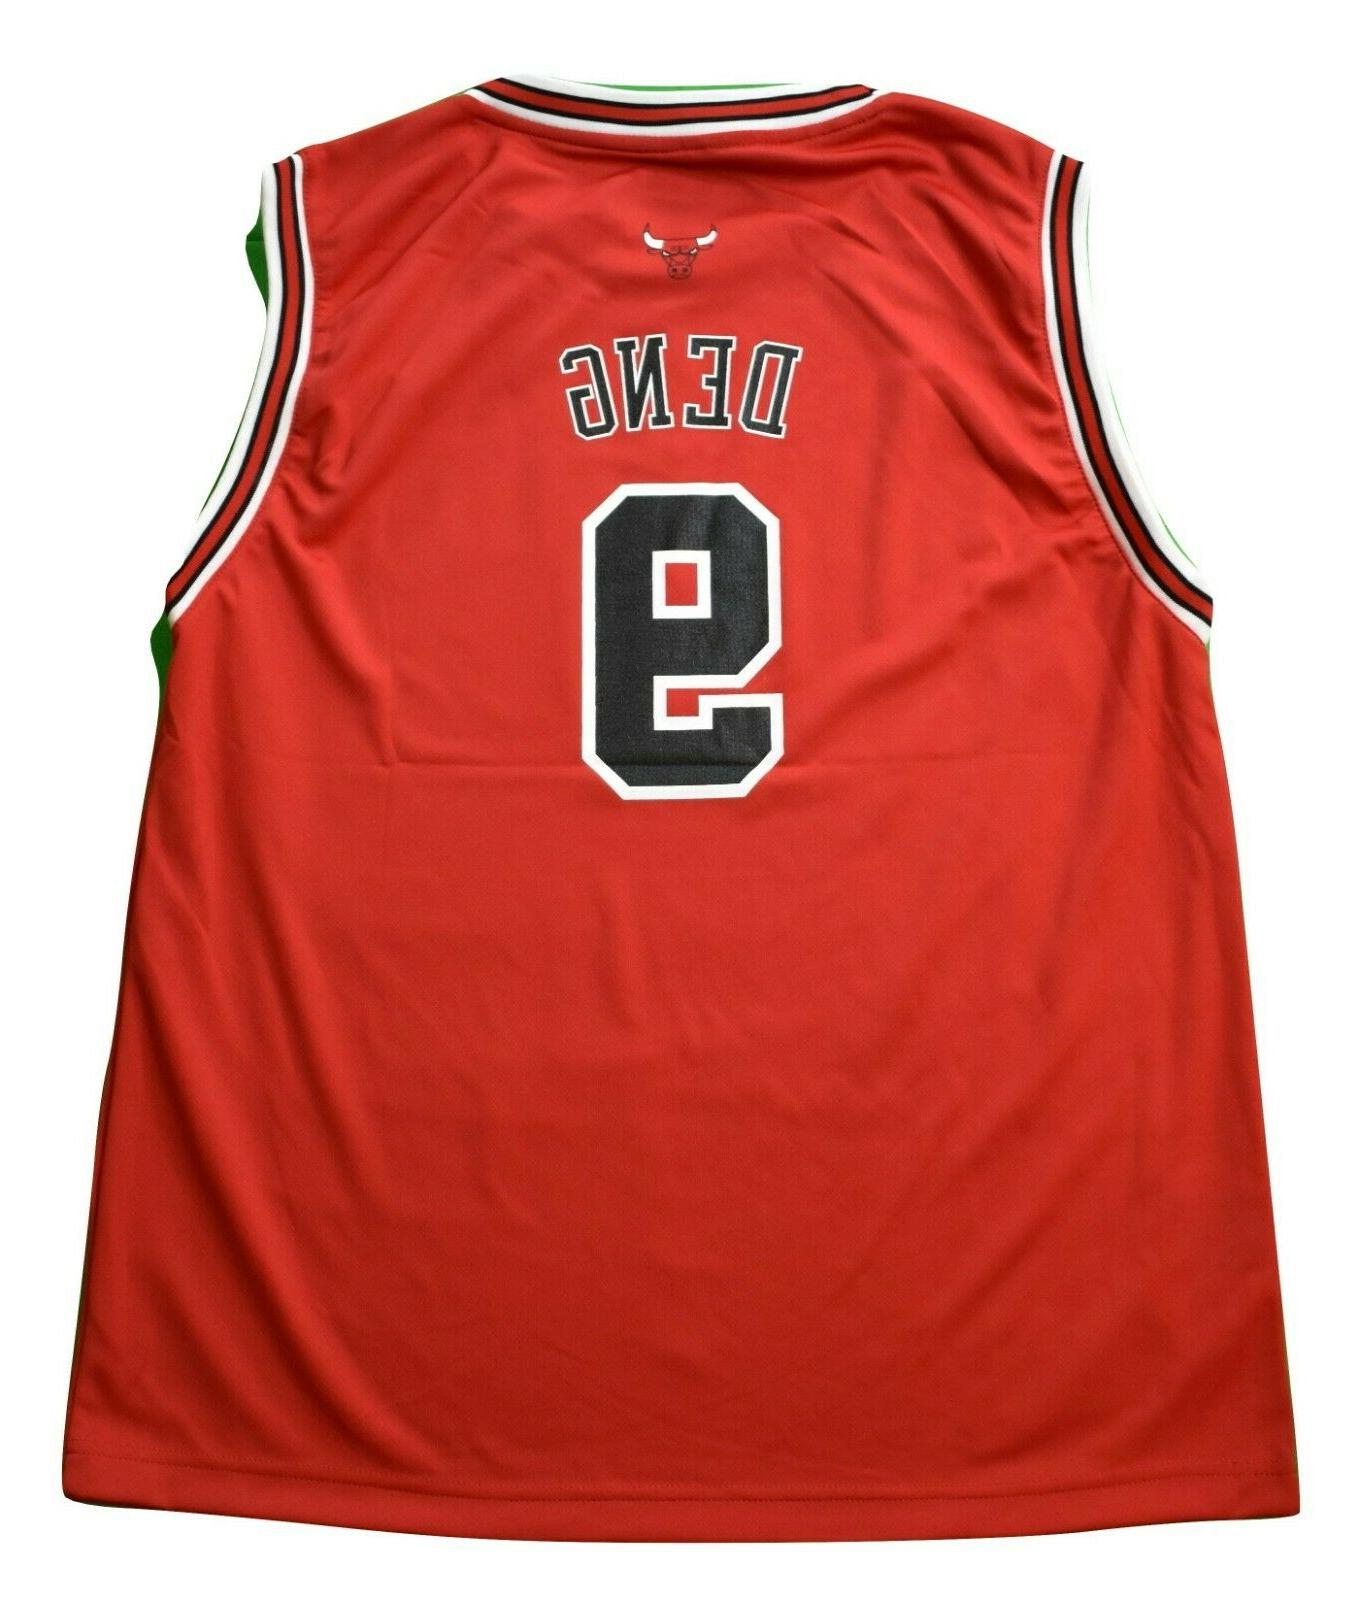 youth nba chicago bulls luol deng basketball